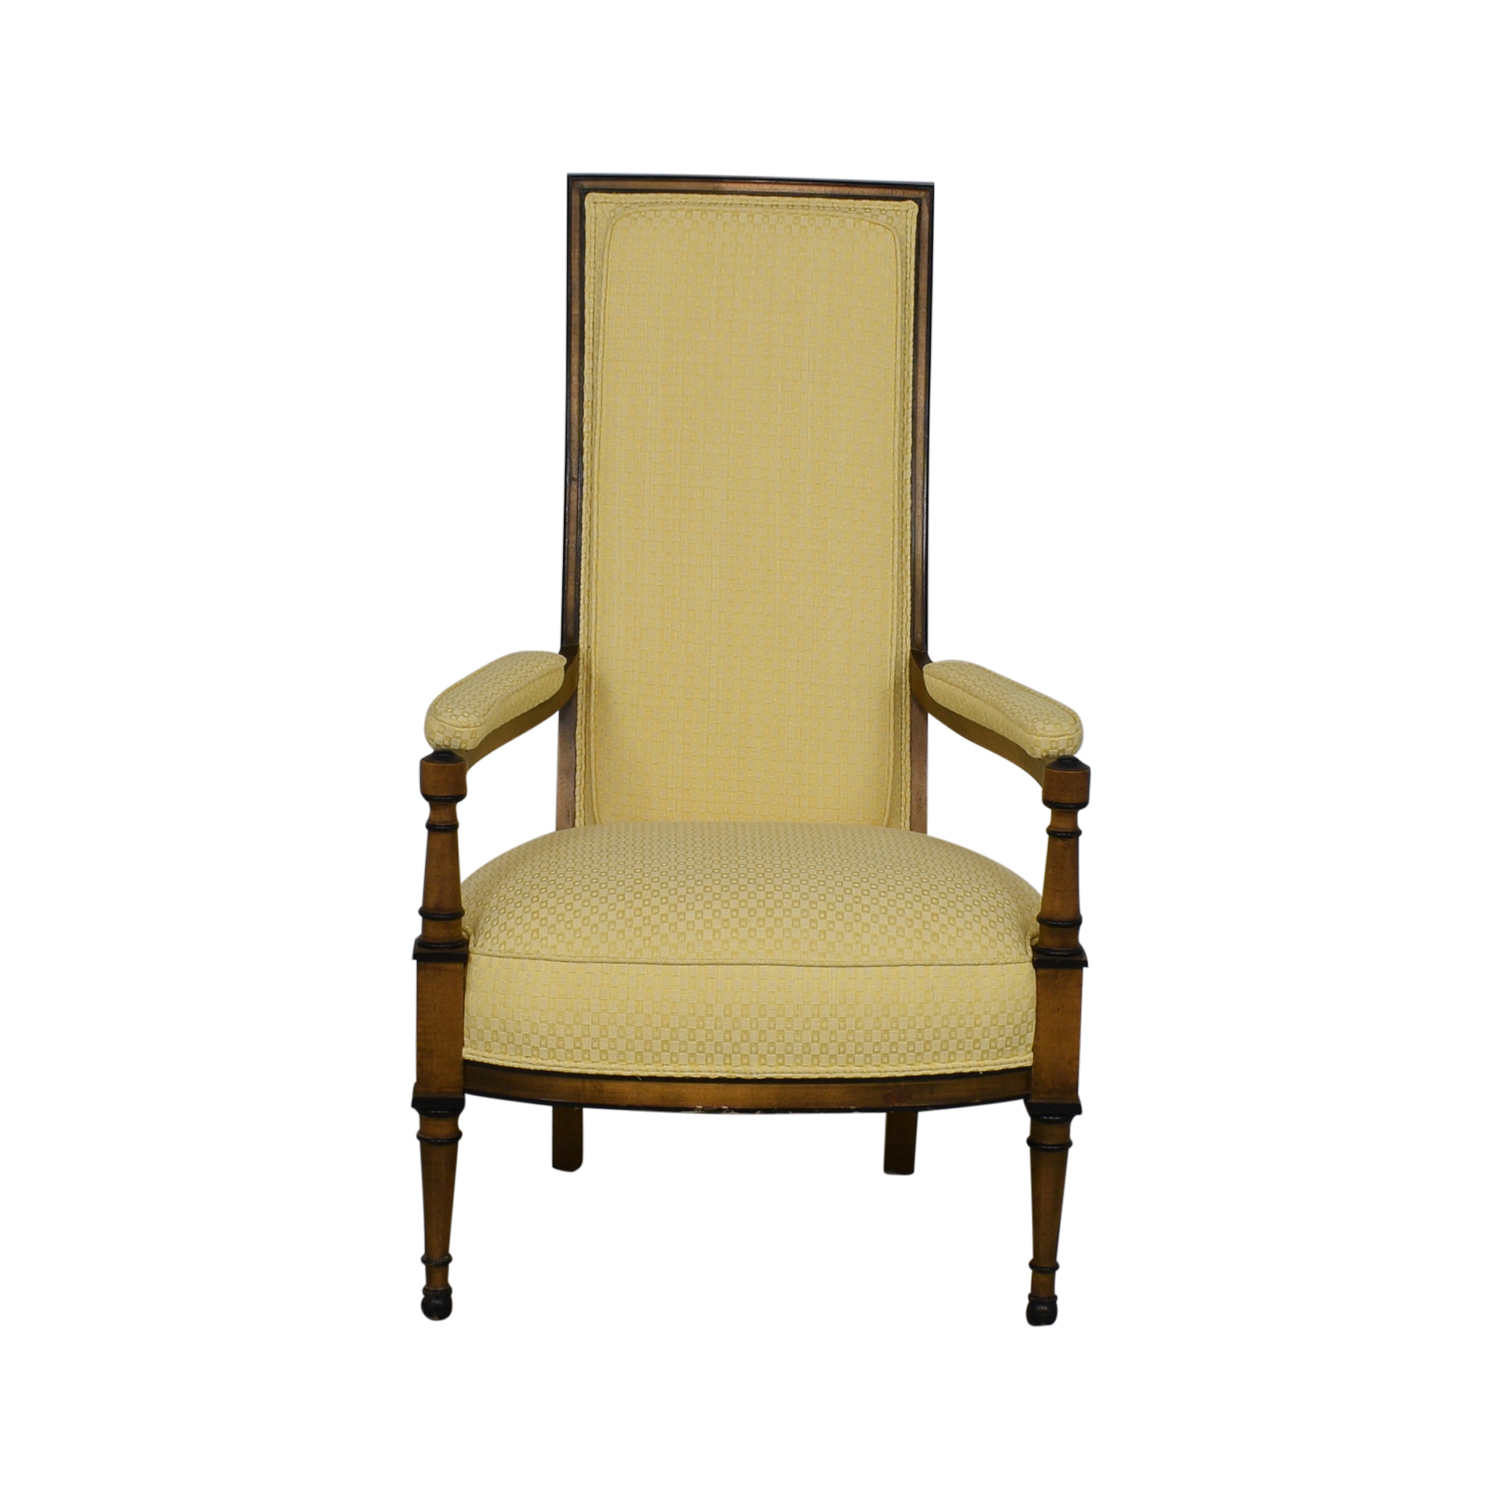 Upholstered High Back Chair yellow & brown